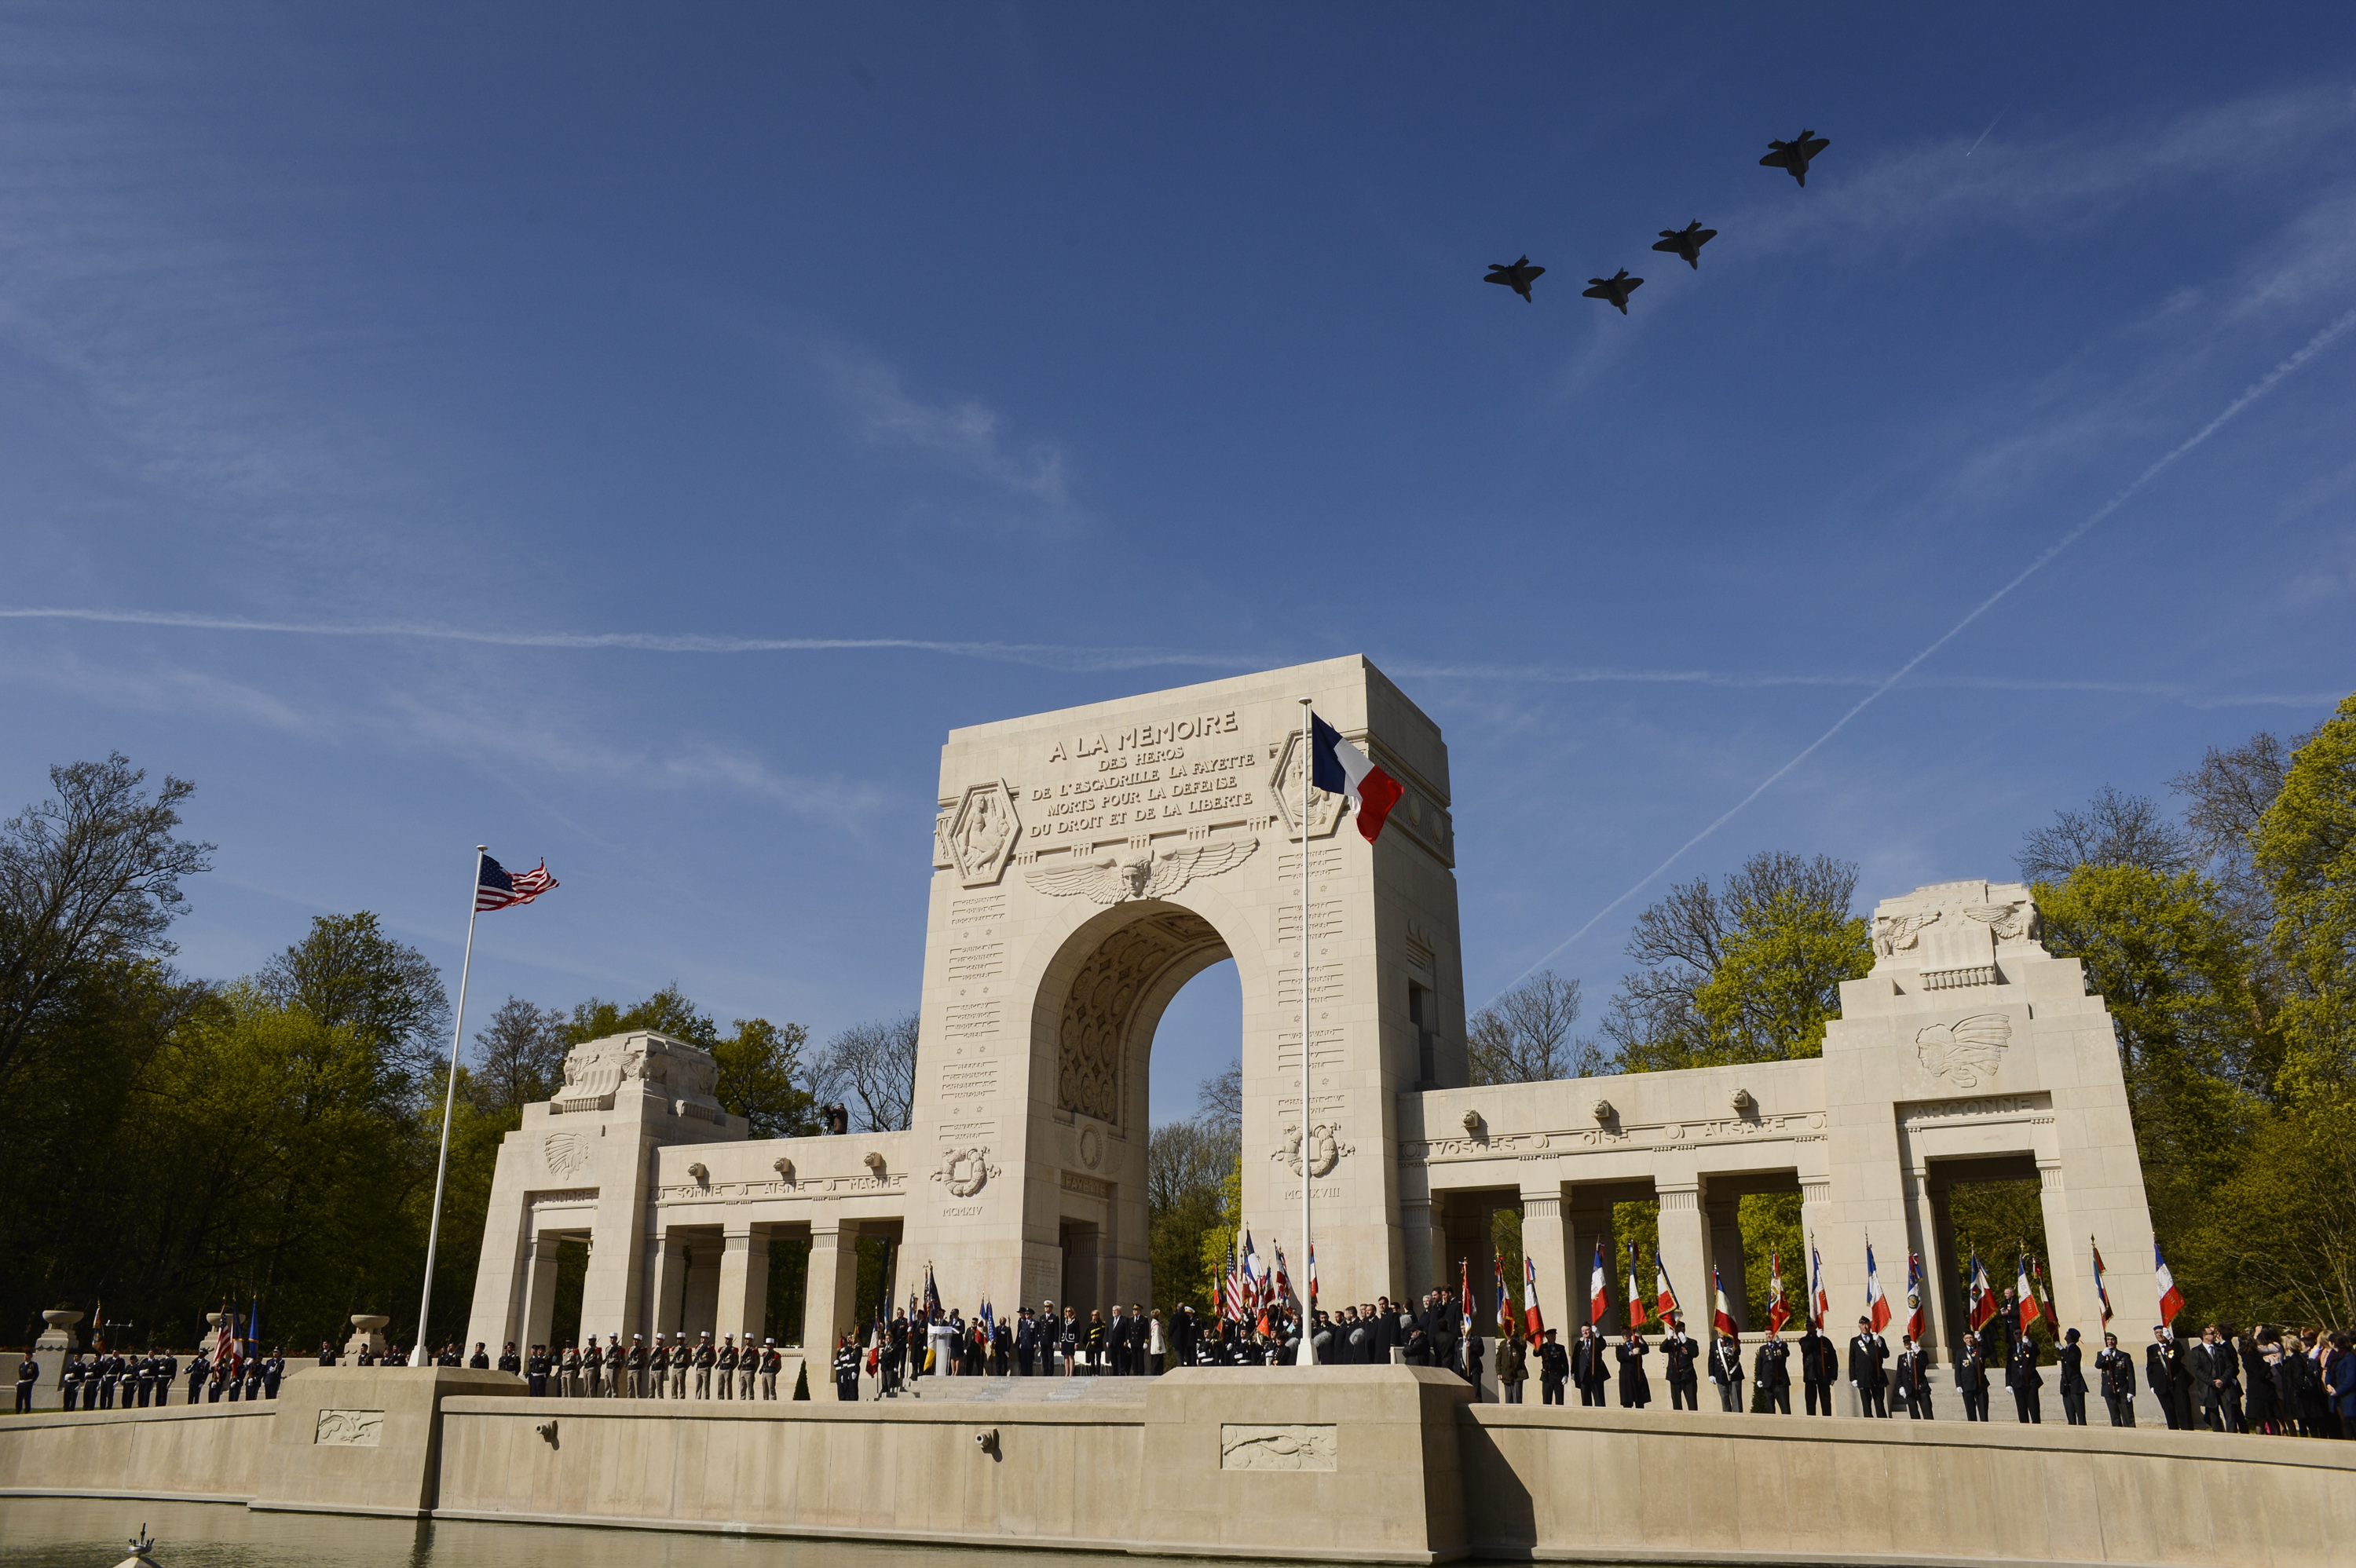 Four U.S. Air Force F-22 Raptor fifth generation fighters fly over the Lafayette Escadrille Memorial in Marnes-la-Coquette, France, April 20, 2016, during a ceremony honoring the 268 Americans who joined the French Air Force before the U.S. officially engaged in World War I. In addition to the F-22s, a USAF B-52 Stratofortress bomber, three FAF Mirage 2000Ns, one FAF Rafale and a World War I-era Stearman PT-17 biplane performed flyovers during the ceremony commemorating the 100th anniversary of the Layfette Escadrille's formation. Men of the Lafayette Escadrille and Lafayette Flying Crops were critical to the formation of the U.S. Air Force. (U.S. Air Force Photo by Tech. Sgt. Joshua DeMotts/Released)